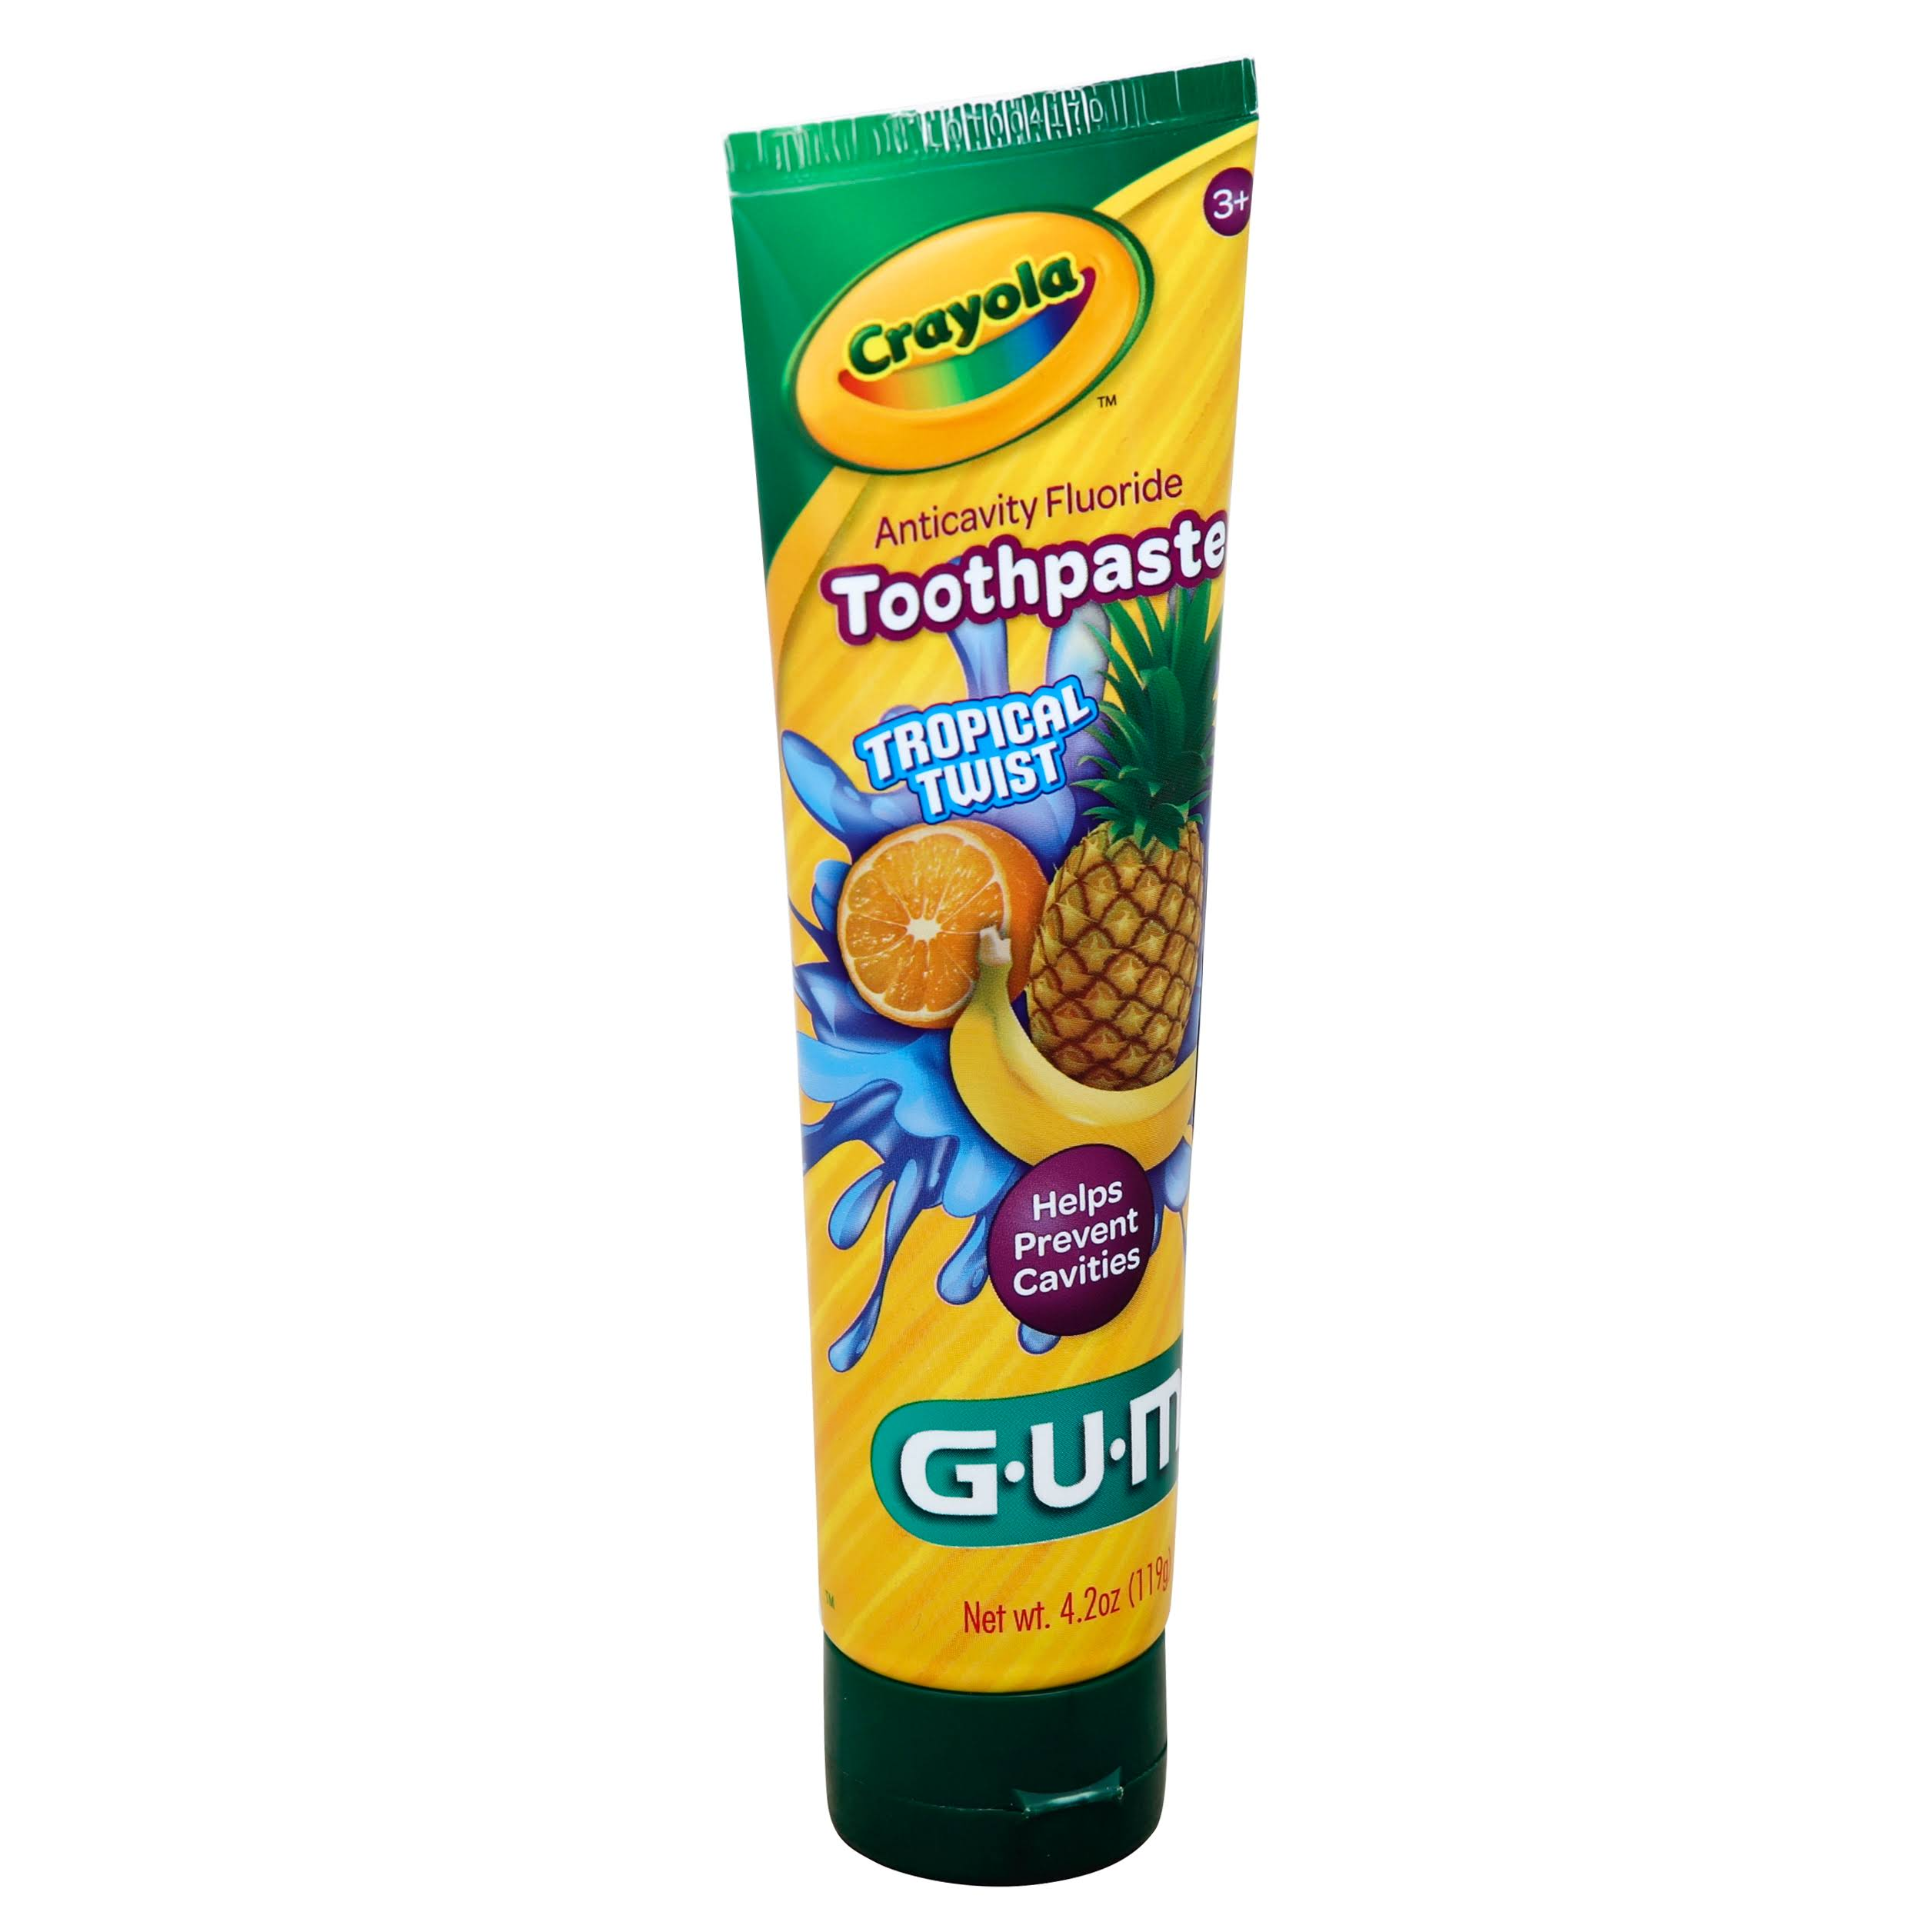 Sunstar G.U.M Crayola Squeeze-A-Color Anticavity Fluoride Toothpaste - Tropical Twist, 4.2oz